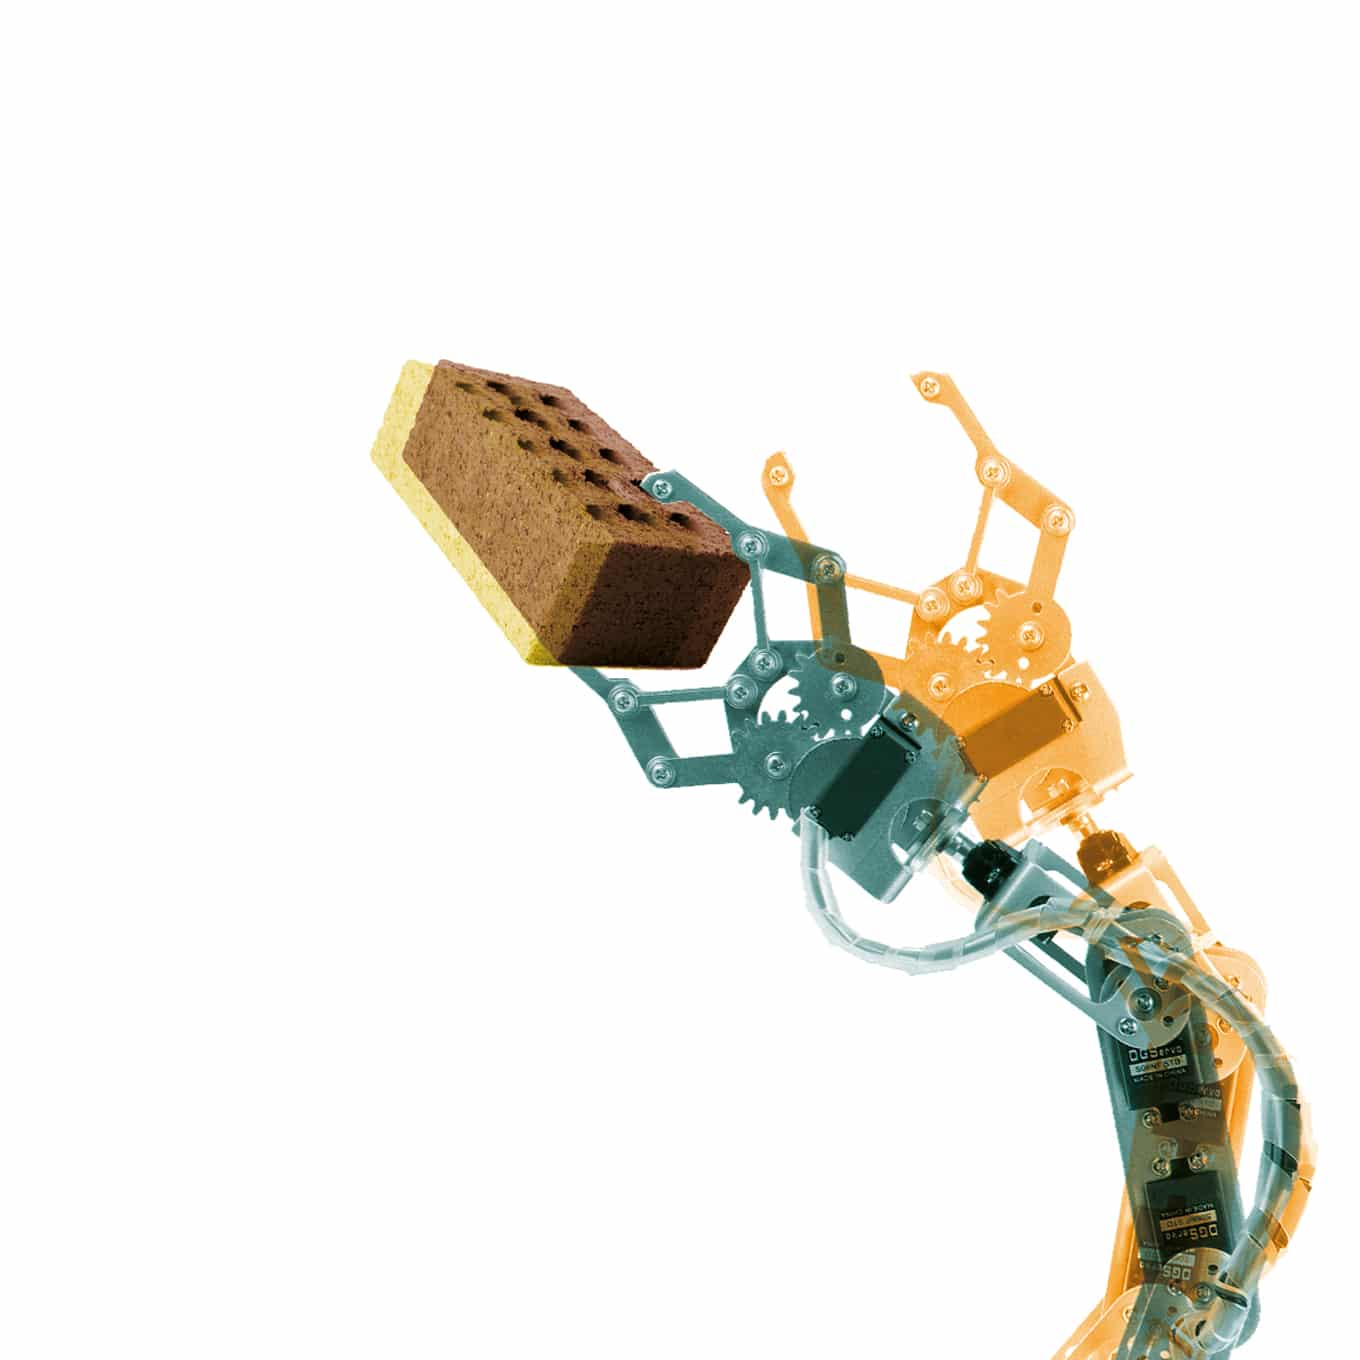 illustration of a robot hand carrying a brick